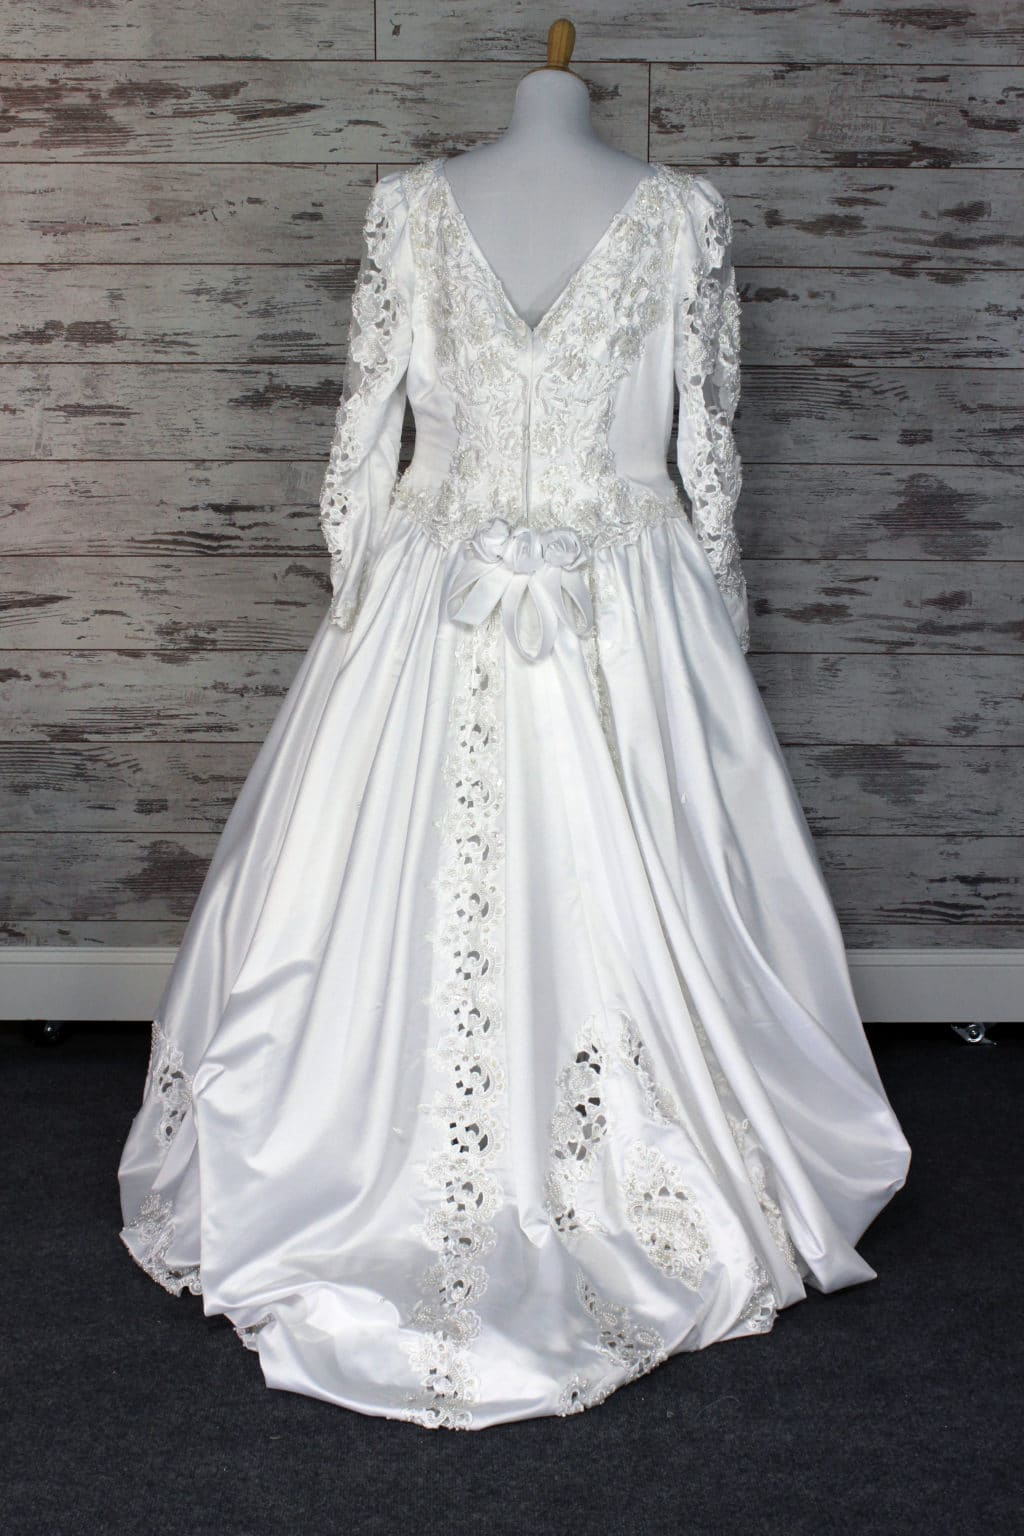 Alfred angelo ball gown wedding dress white size 20w for Angelo alfred wedding dresses